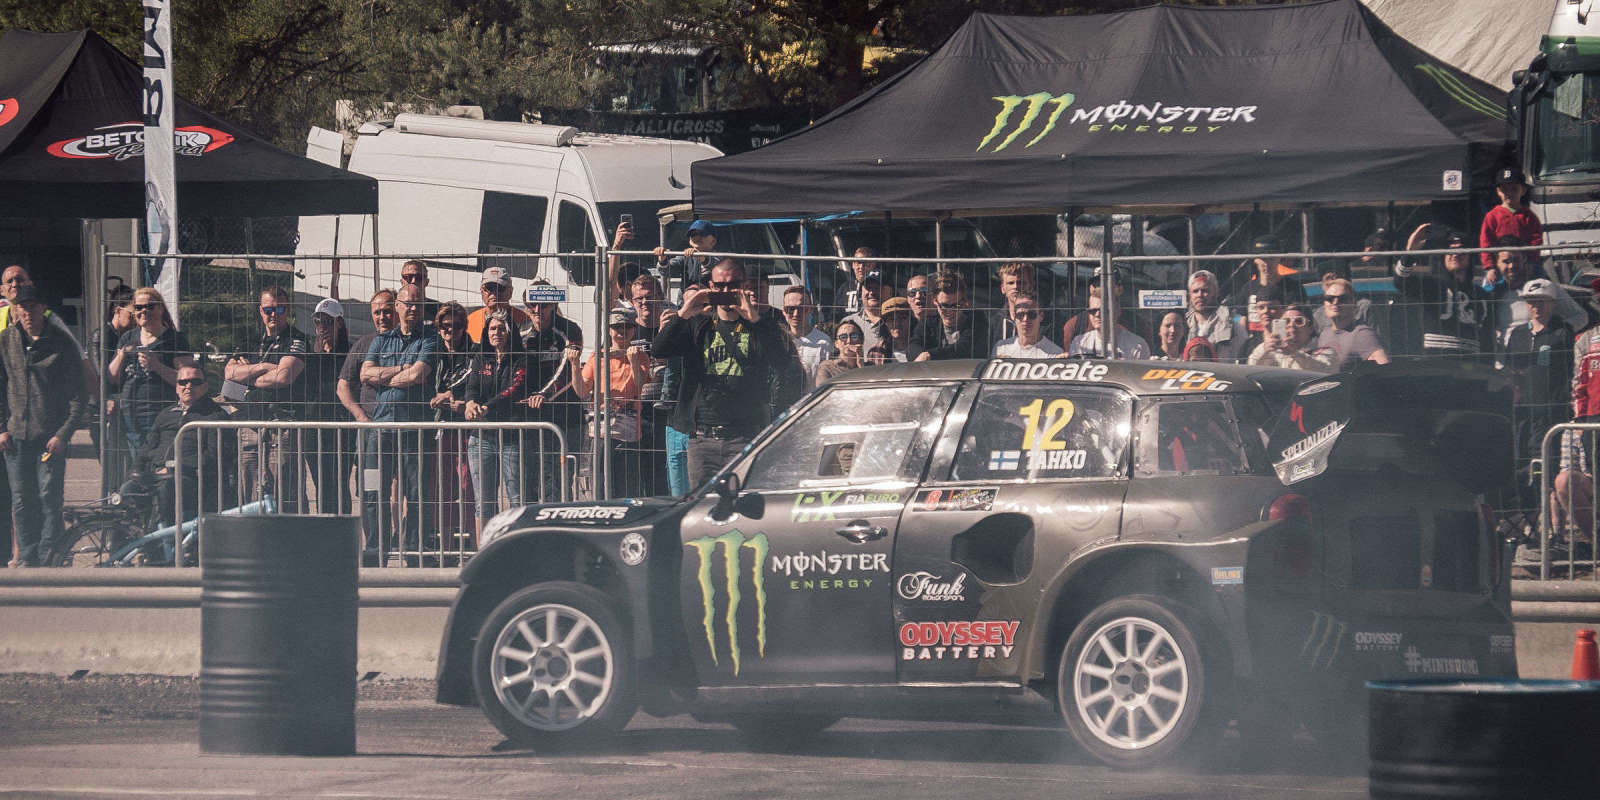 Vermo Drift Festival, invitational drifting competition held in Finland by Riku Tahko.